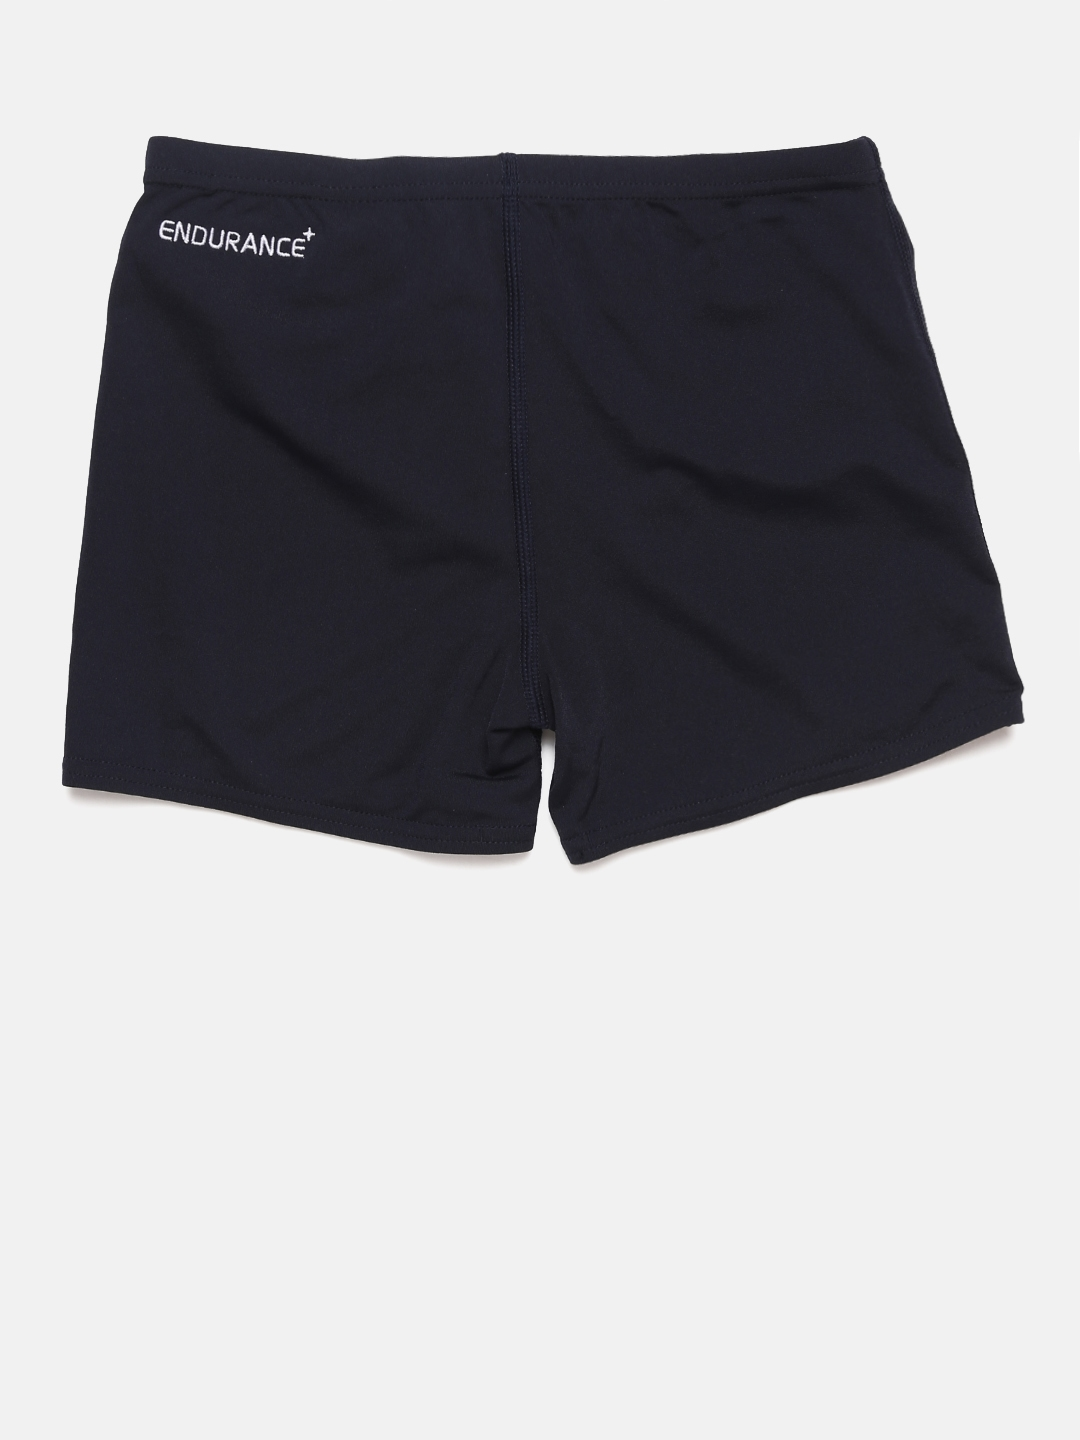 7048d24c46 Buy Speedo Boys Navy Endurance Swim Shorts - Swim Bottoms for Boys ...